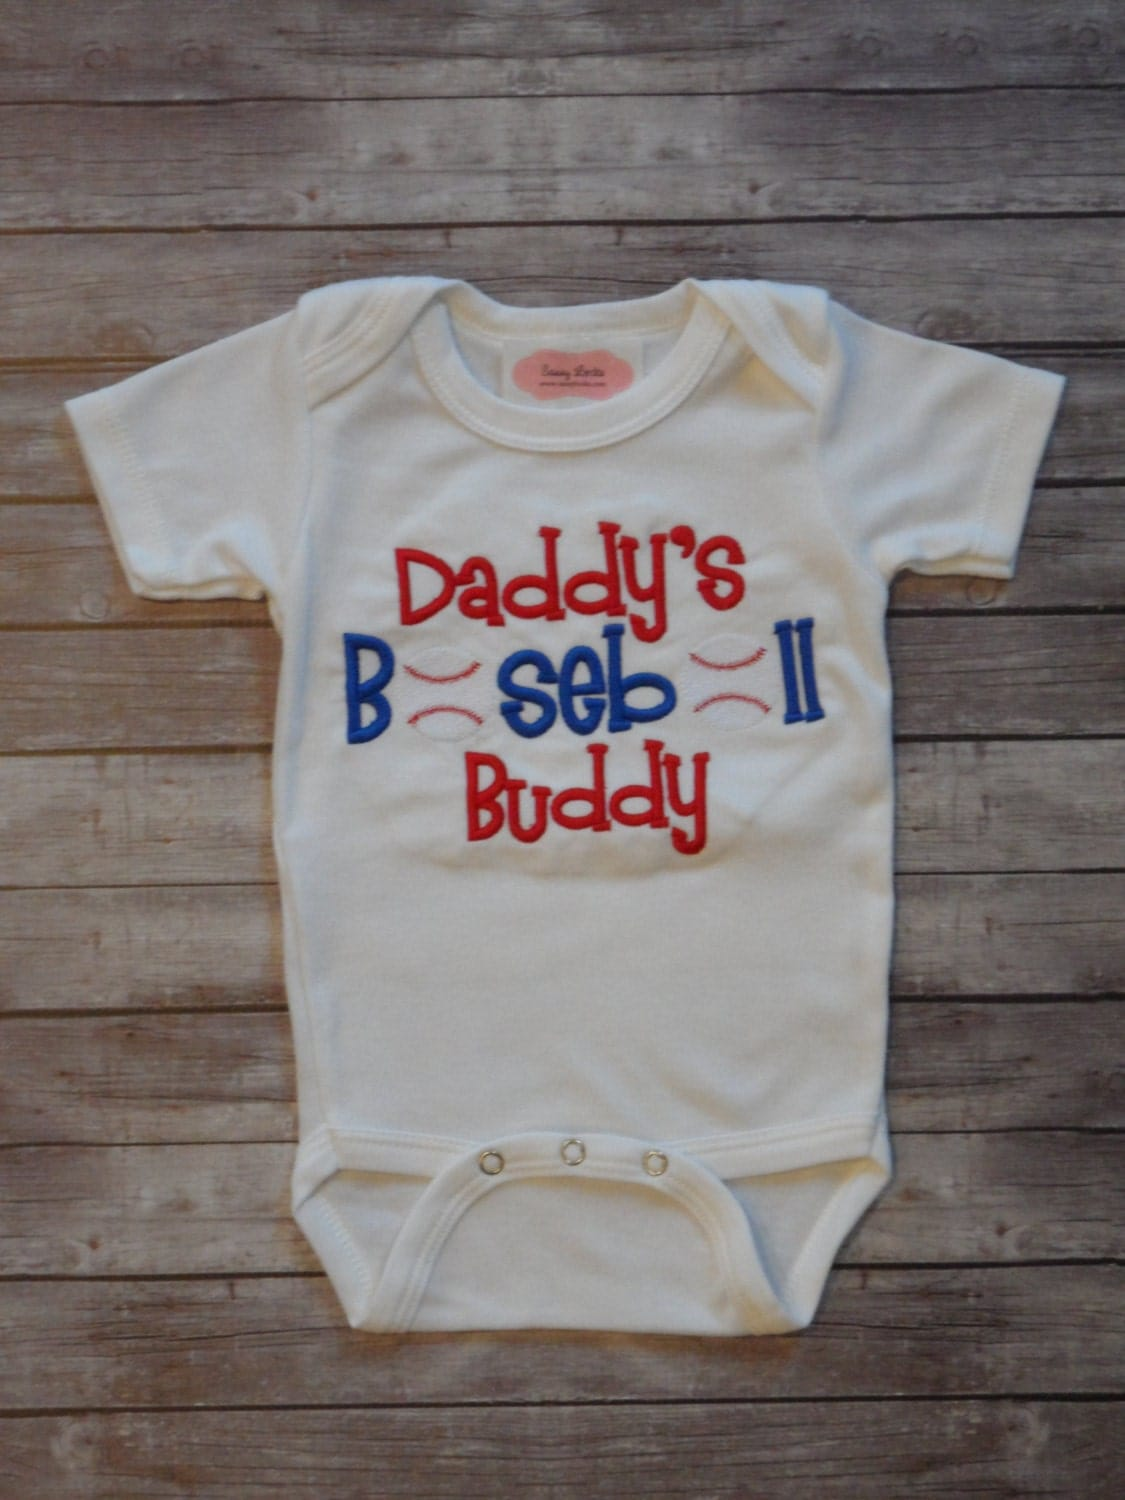 Baby Boy Clothes Baseball Outfit Daddy S Baseball Buddy